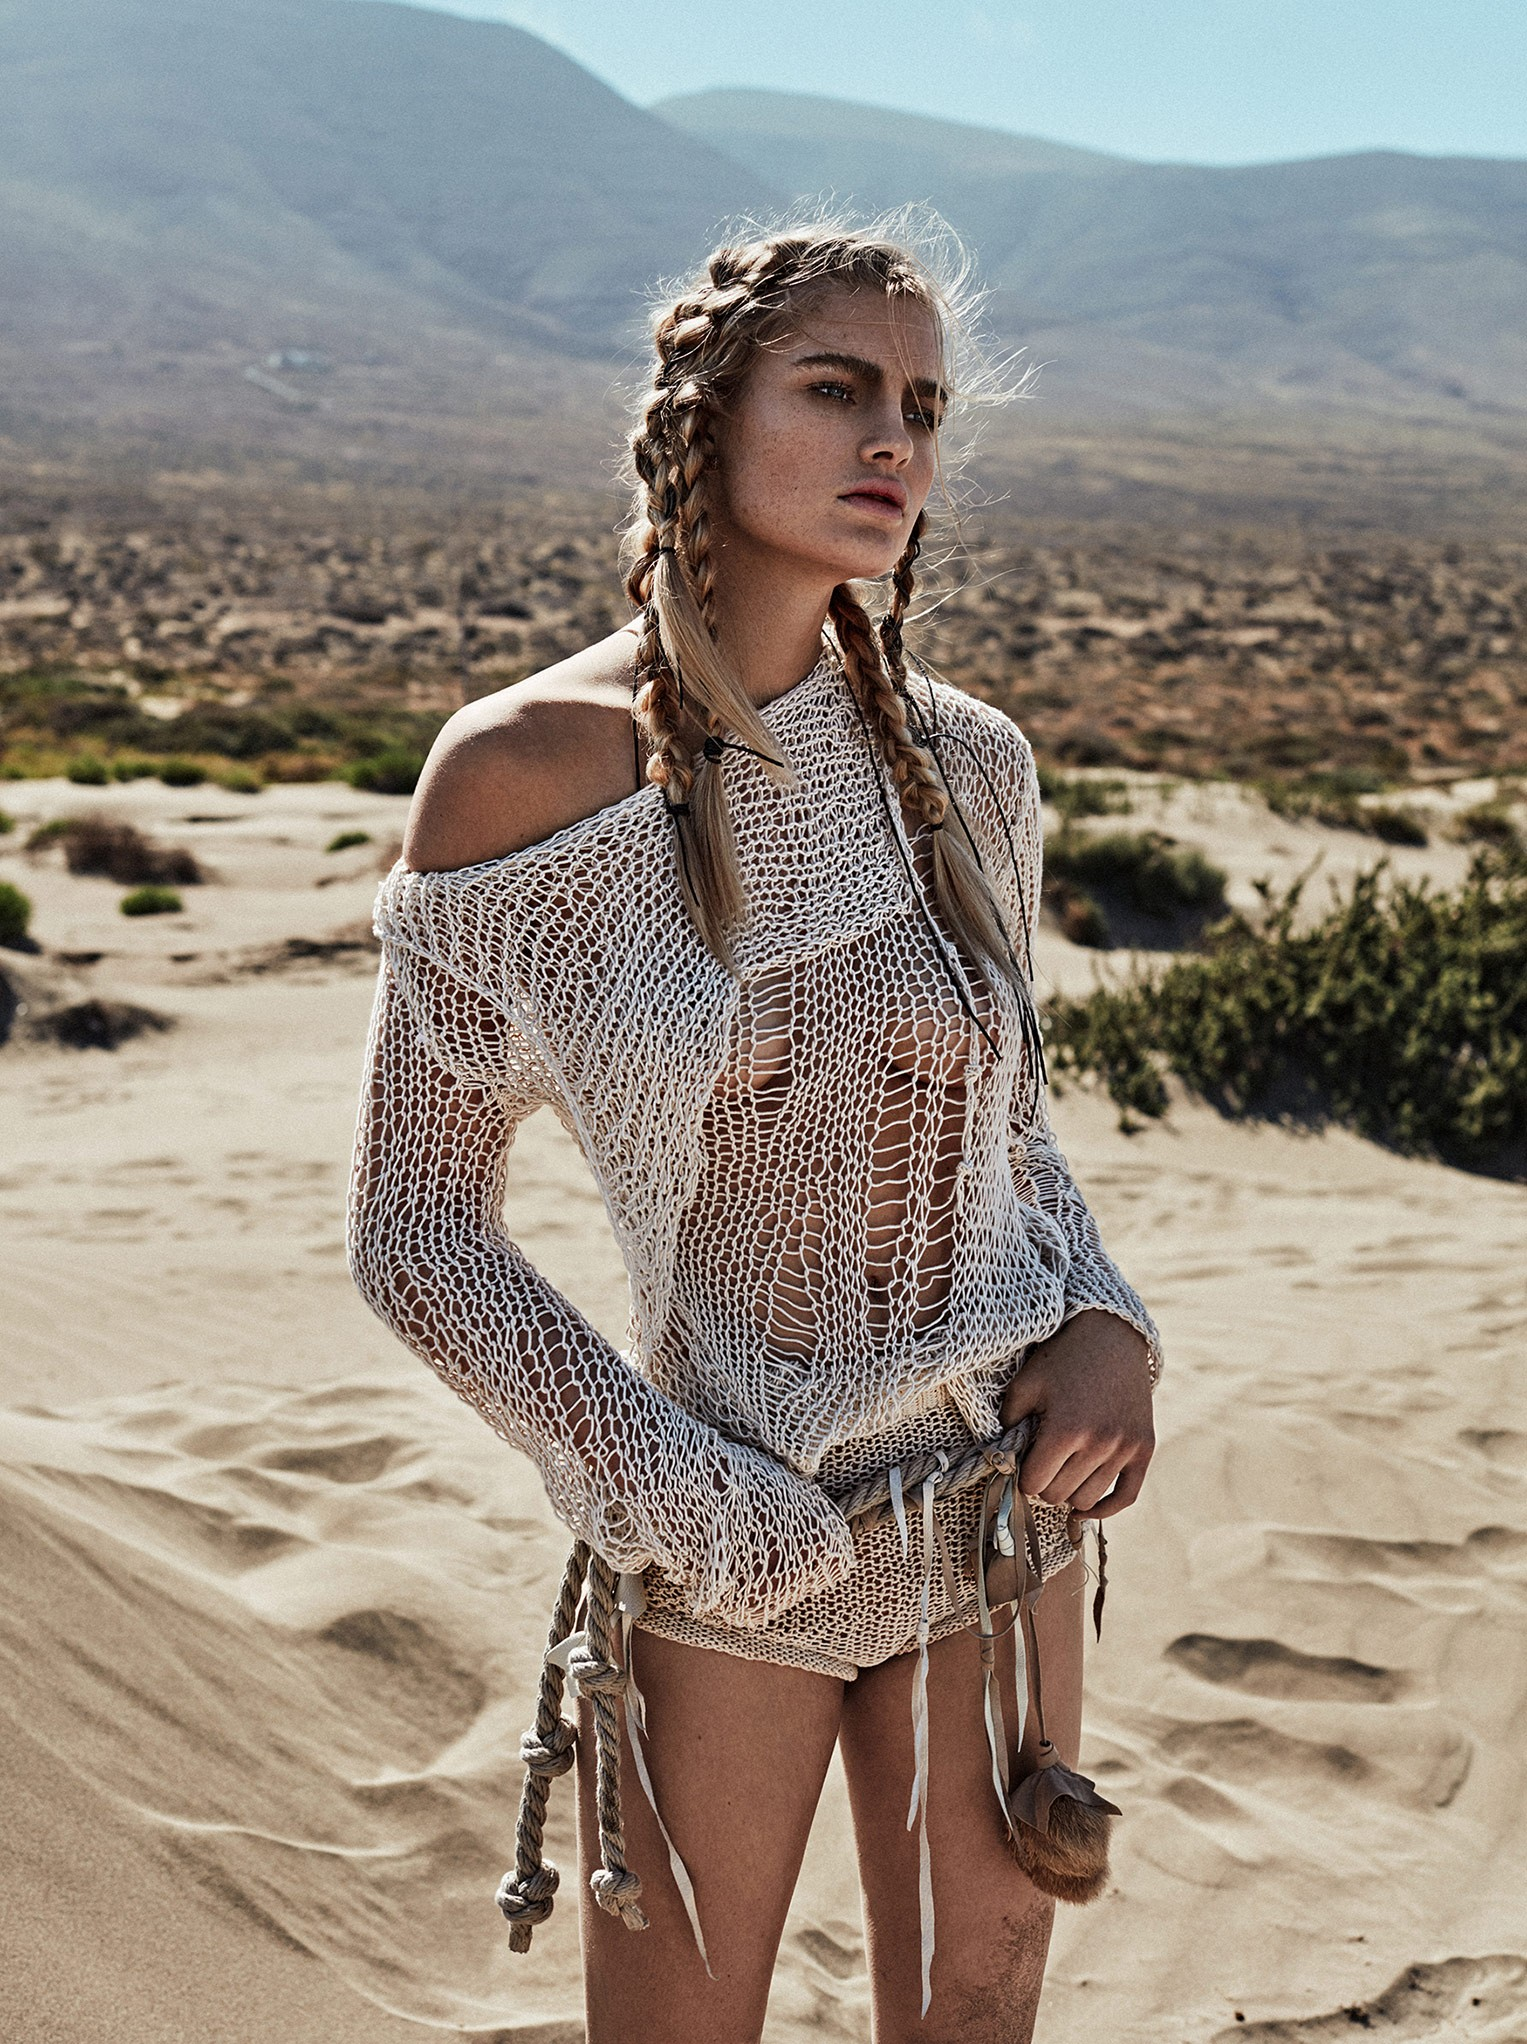 Isabel Scholten by Xavi Gordo - Glamour Italia july 2017